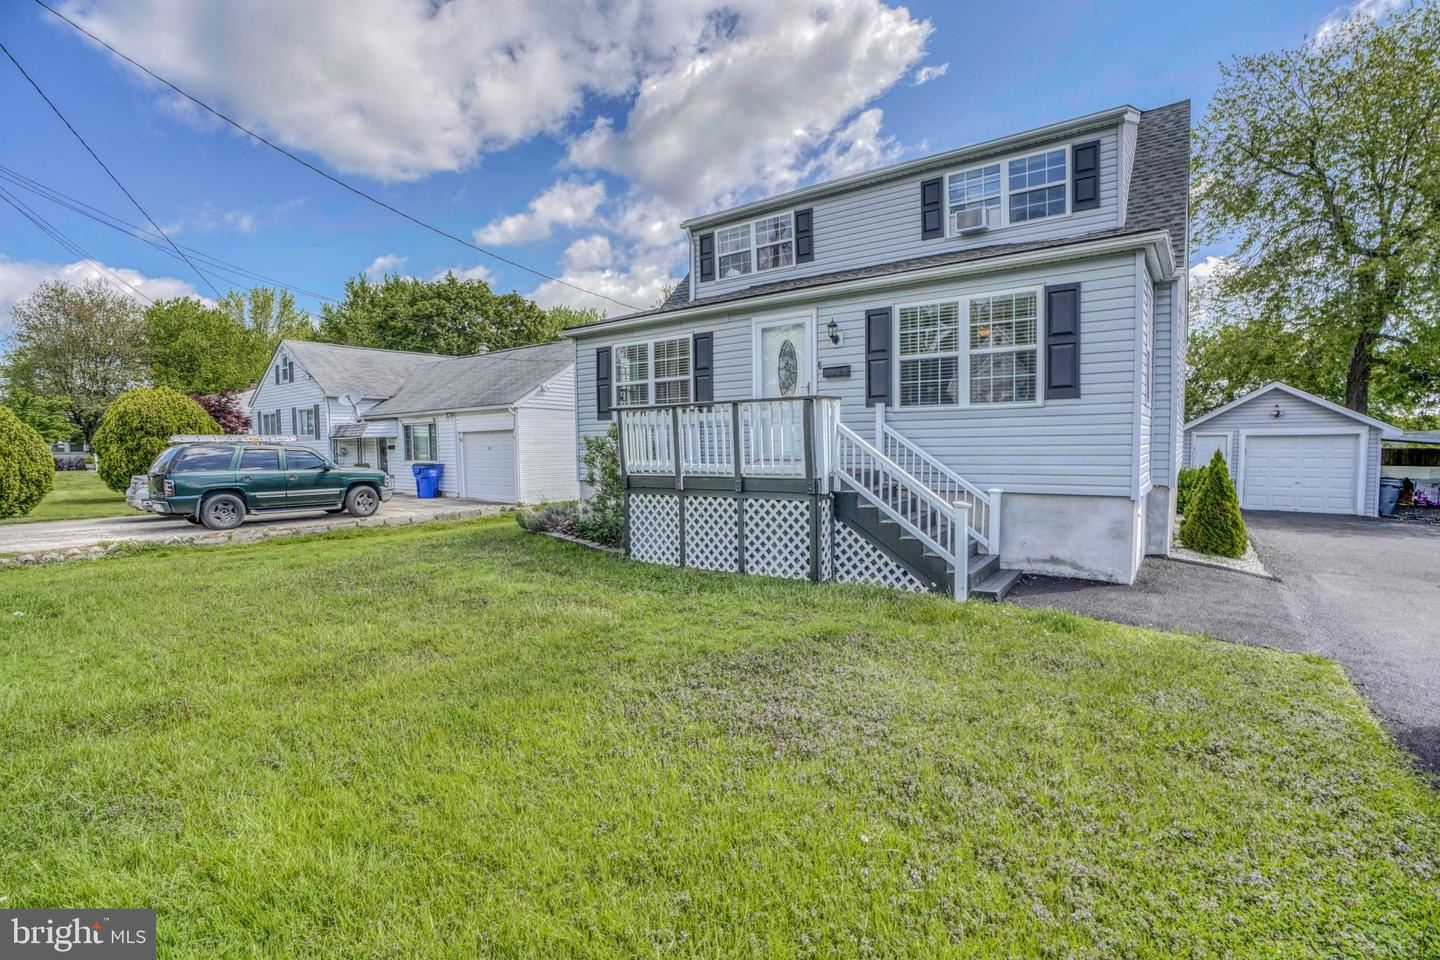 305 OAK ST, Edgewood, MD 21040 - MLS#: MDHR259776